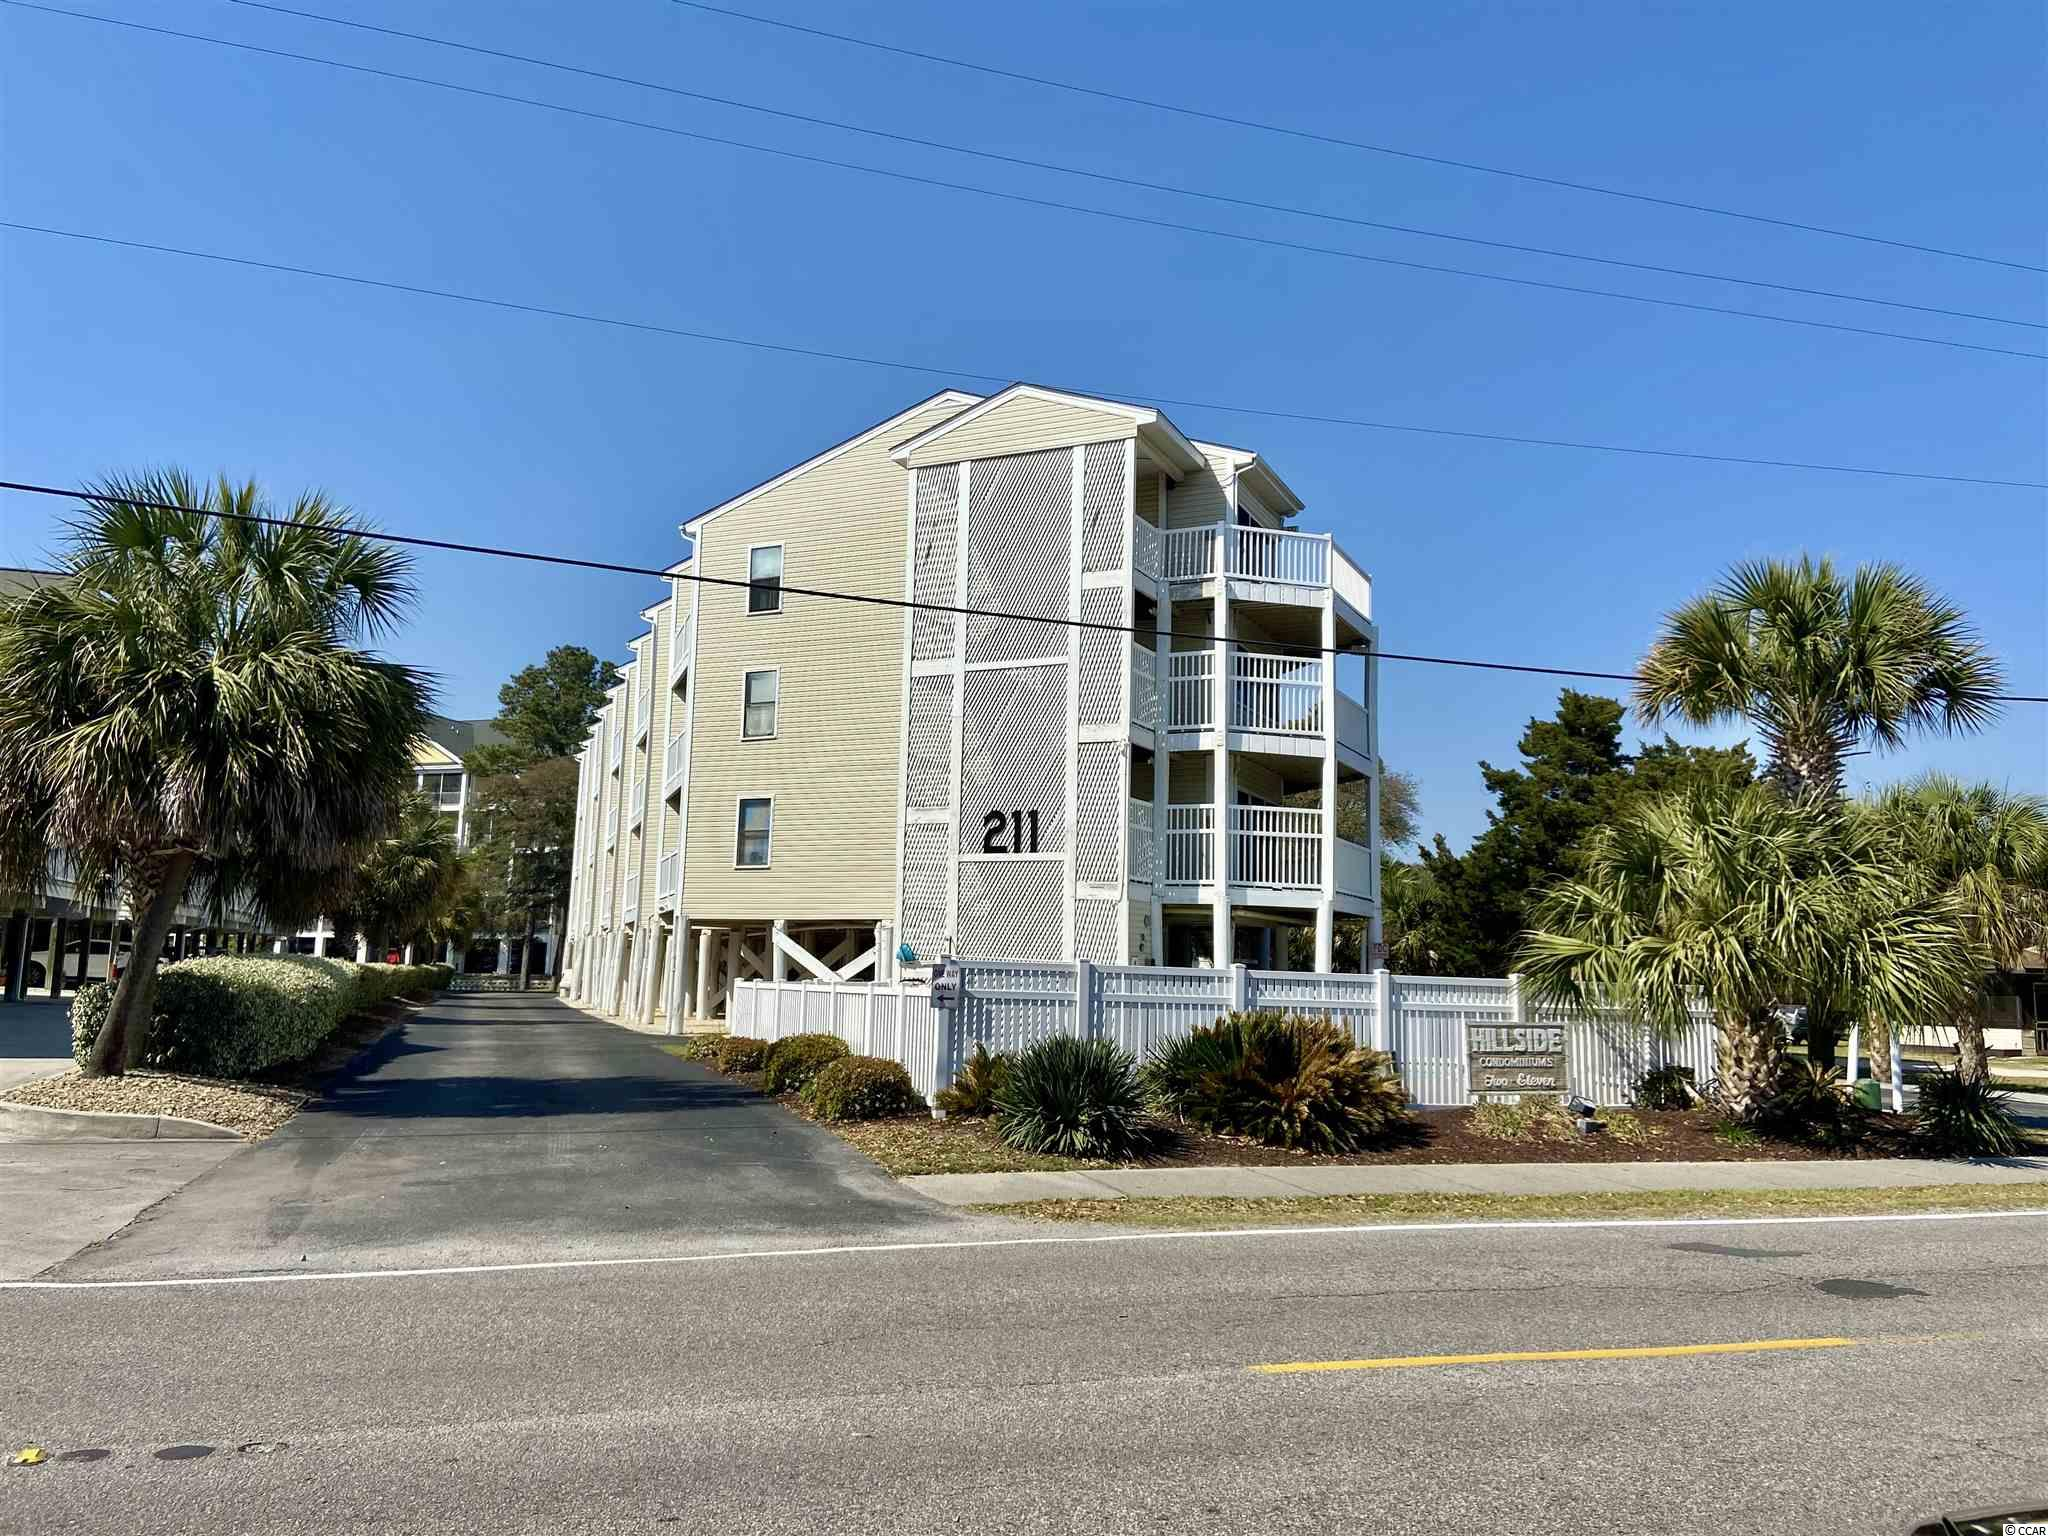 """Beautiful two bedroom, two bath condo located in the heart of North Myrtle Beach. This unit is in excellent condition and only a short walk to the beach! With balcony access in each bedroom and a large screened in porch on the front, there is ample outdoor space provided to enjoy the ocean air. Below the unit, there is plenty of under building parking and a nice pool. Inside the unit, you will see freshly painted walls and newer wood laminate flooring. Being sold furnished, this is a truly """"move-in-ready"""" unit!"""